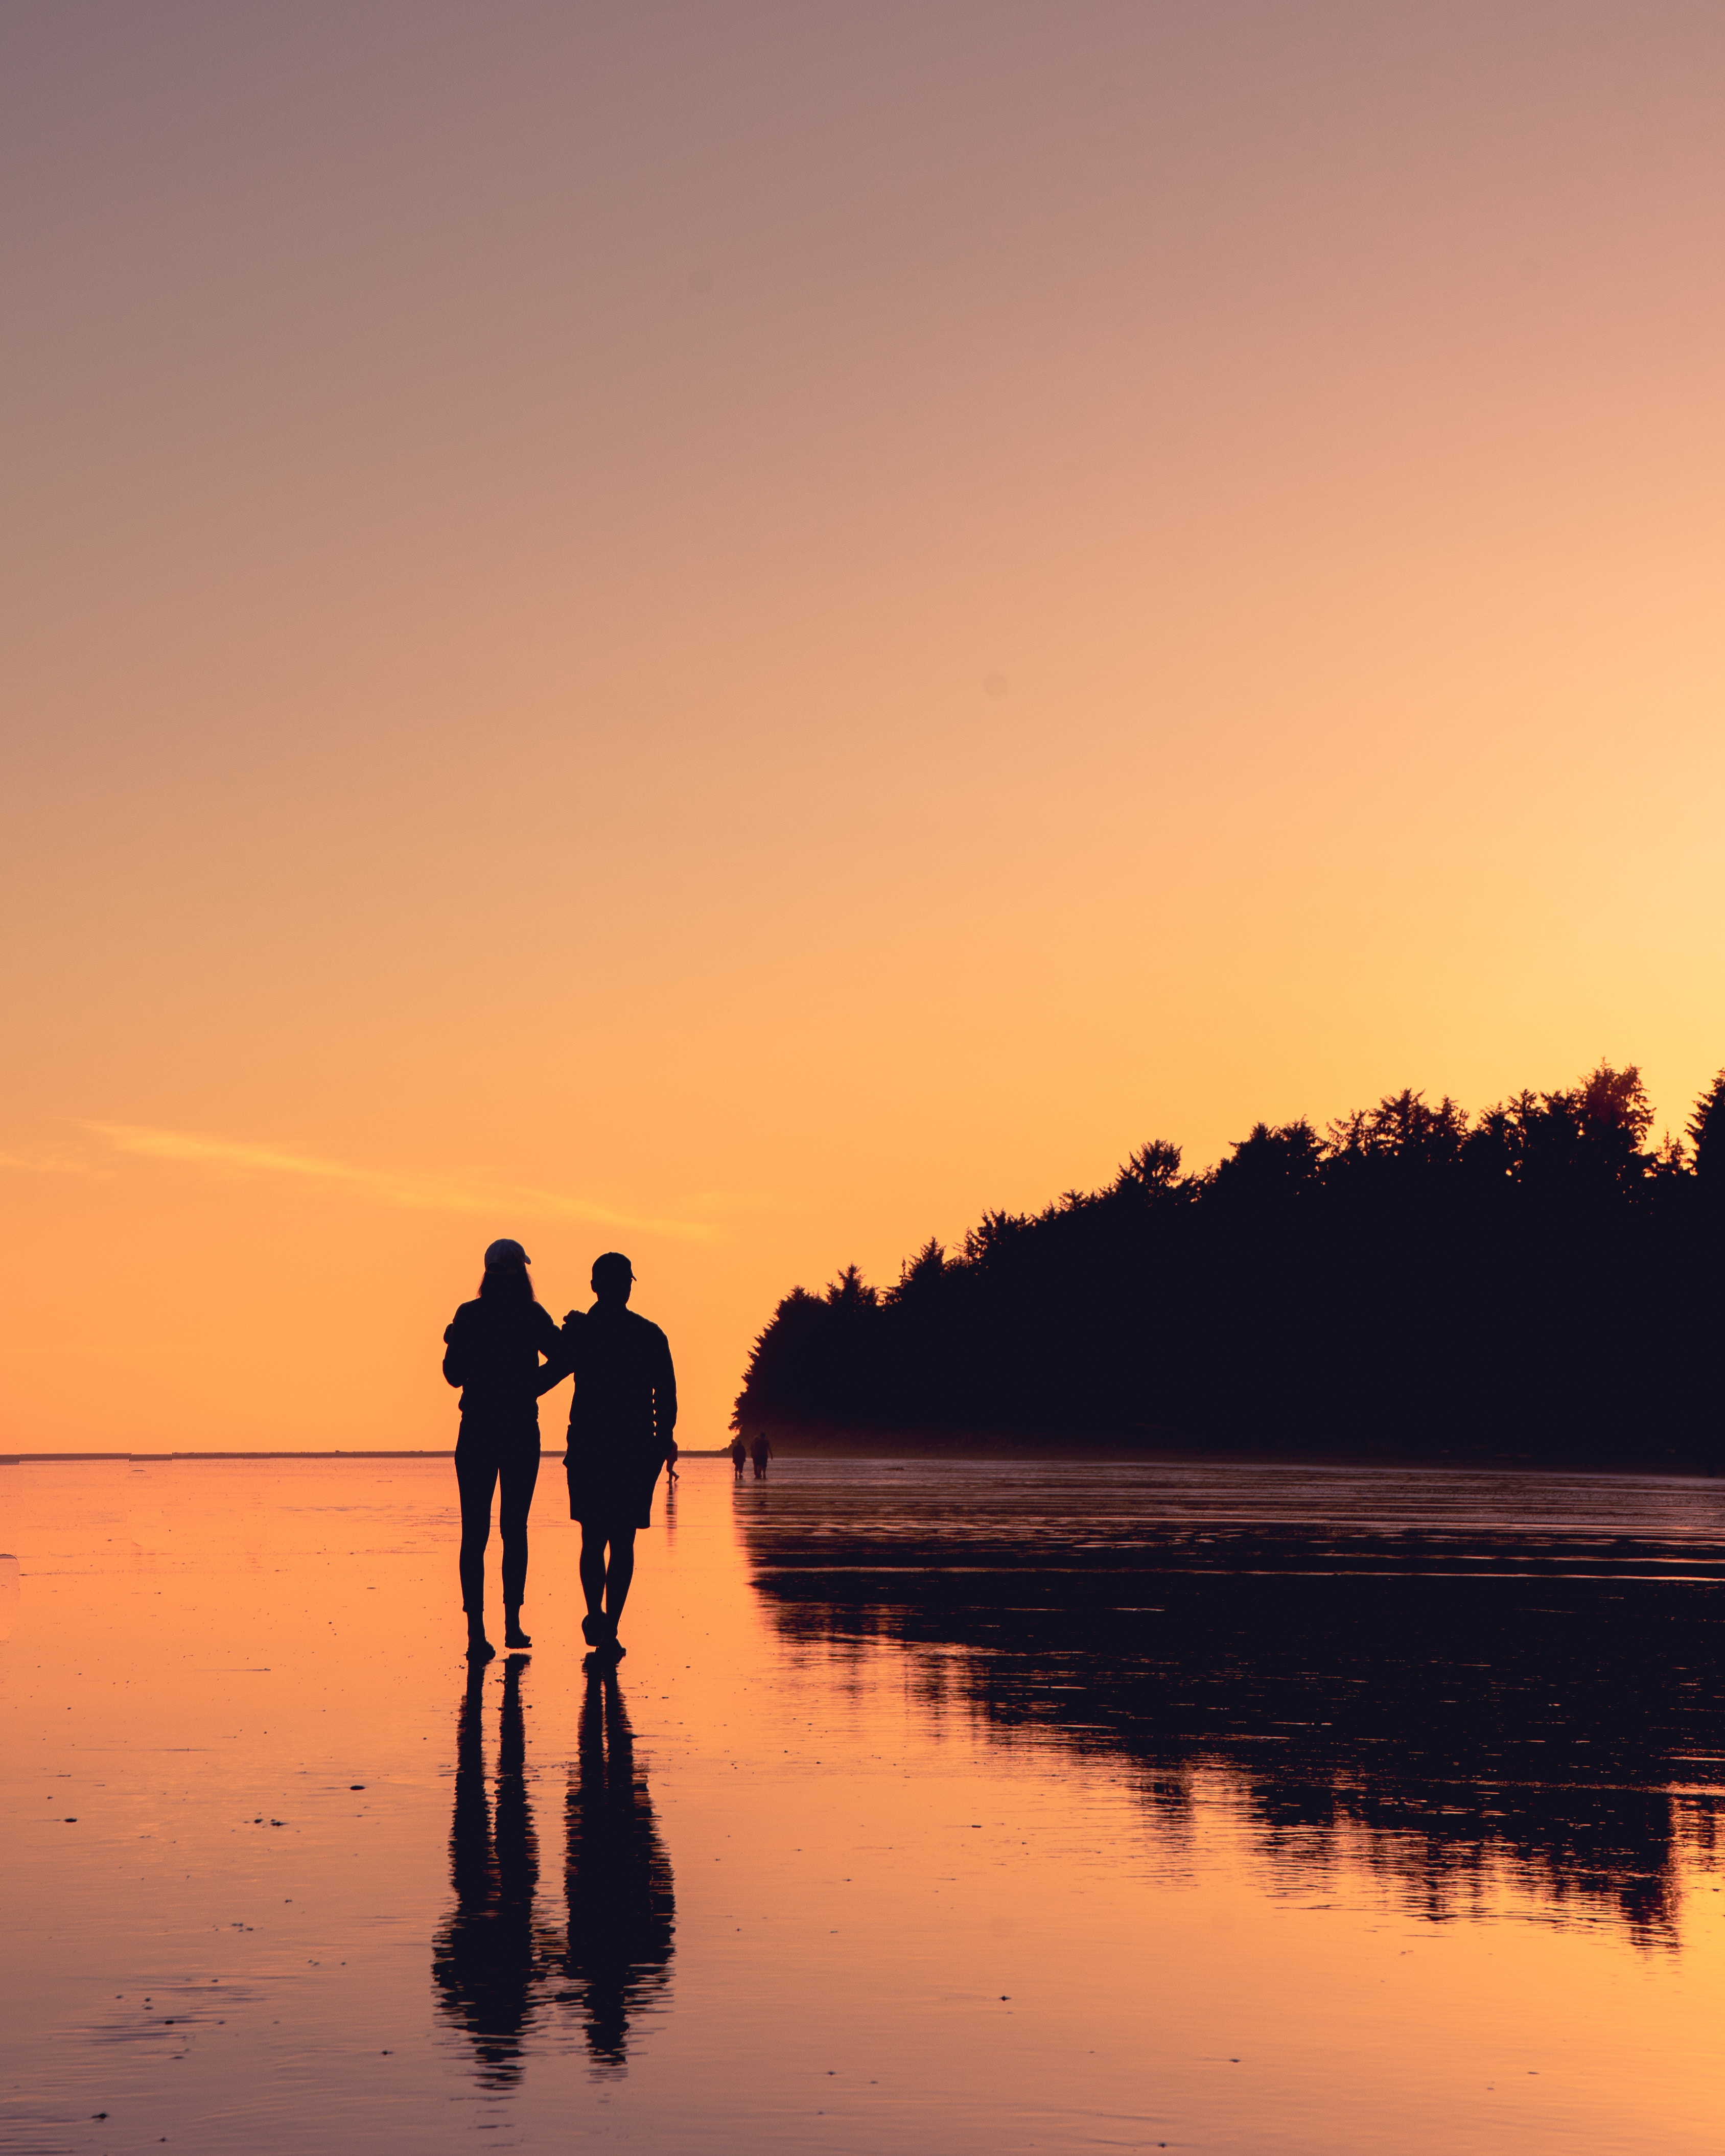 100771 free wallpaper 2160x3840 for phone, download images Sunset, Love, Reflection, Shore, Bank, Couple, Pair, Stroll 2160x3840 for mobile